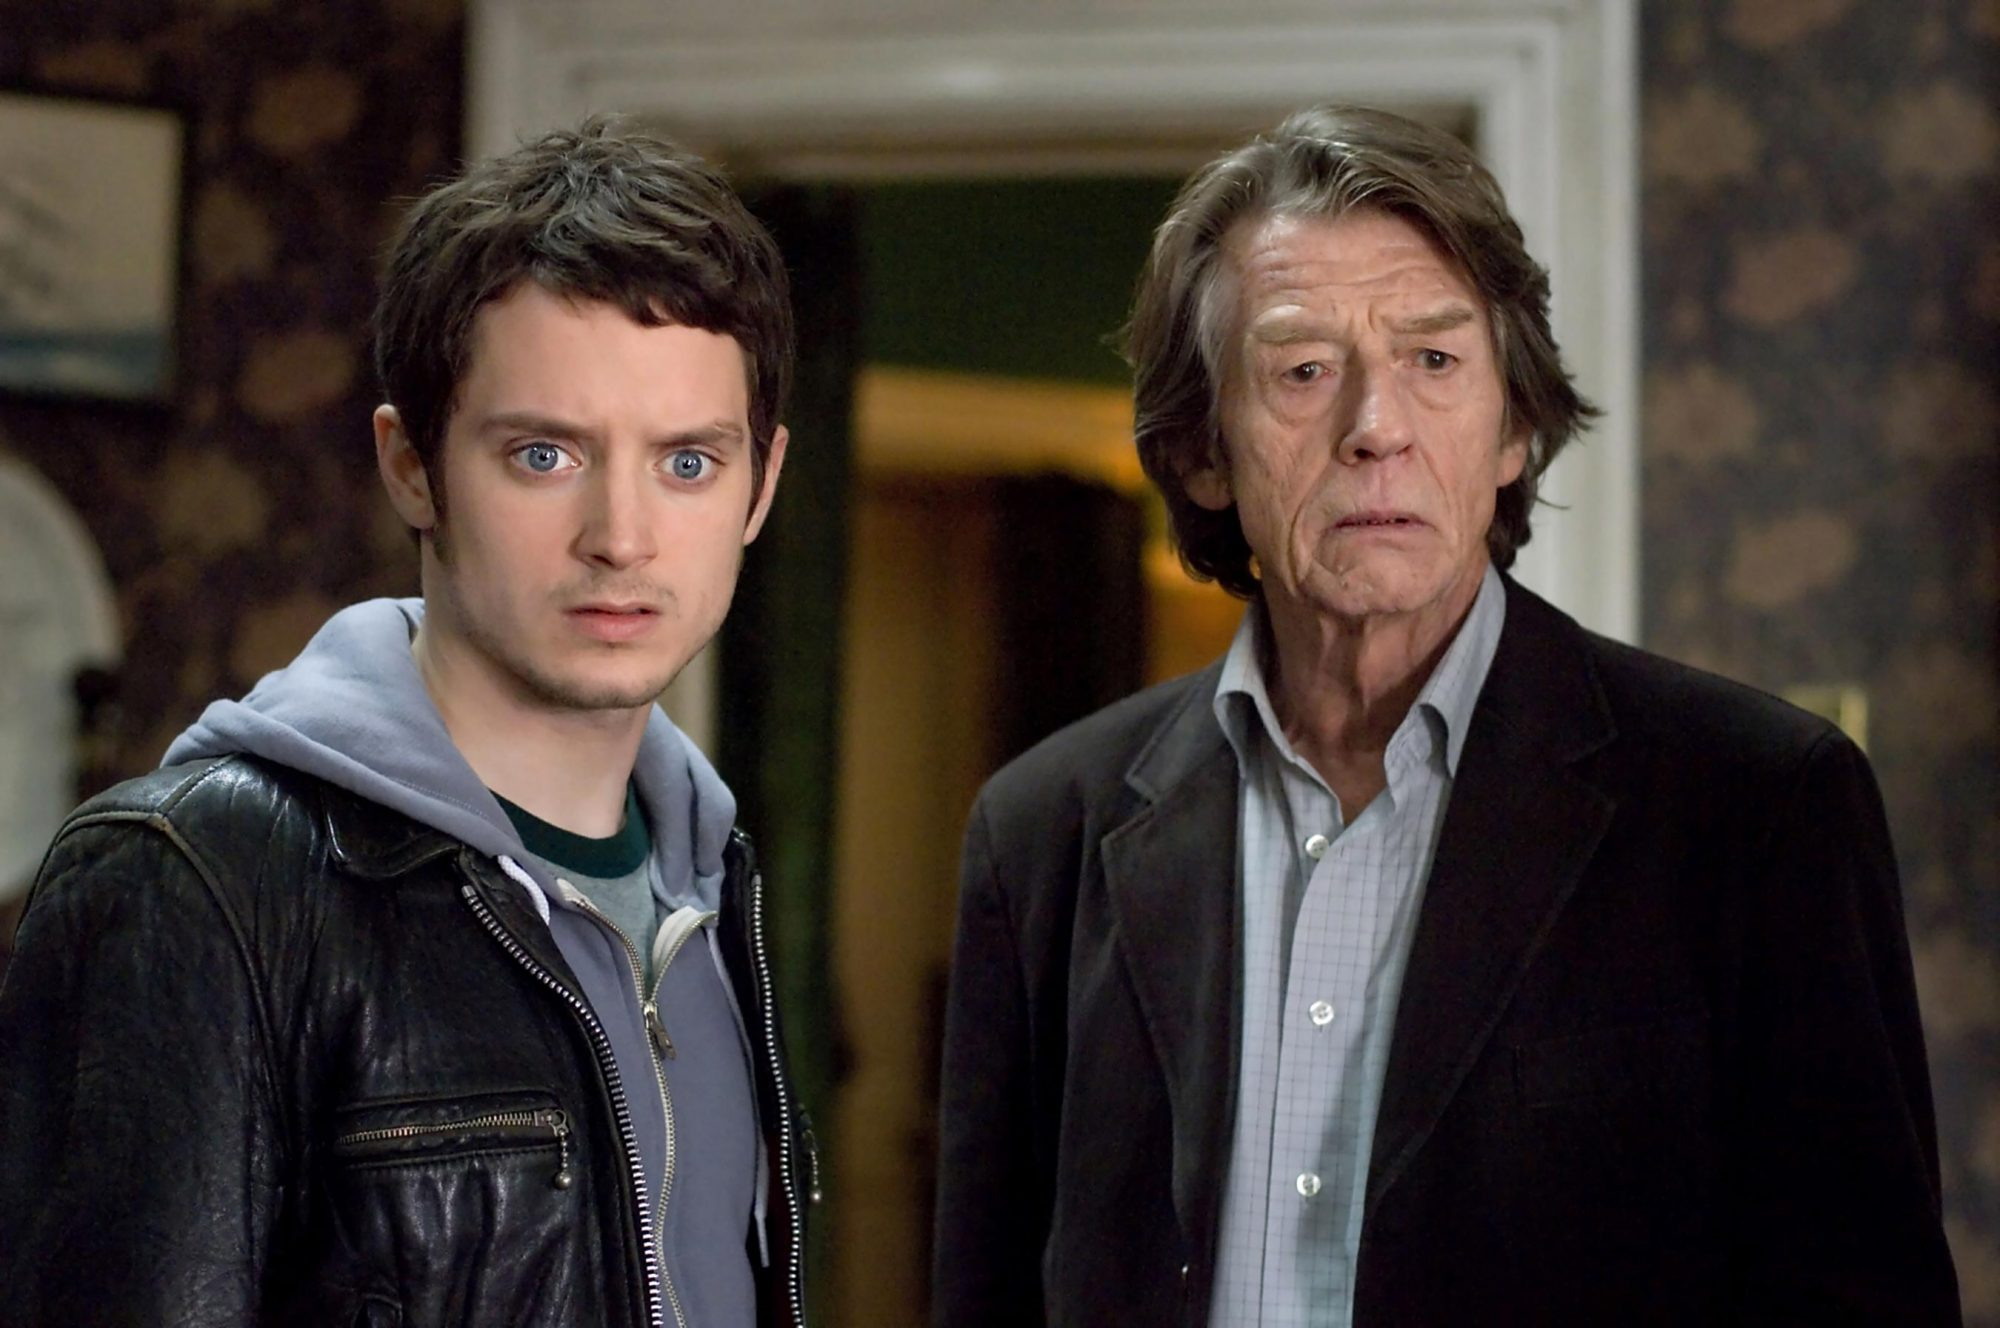 THE OXFORD MURDERS, Elijah Wood, John Hurt, 2008. ©Think Film/courtesy Everett Collection